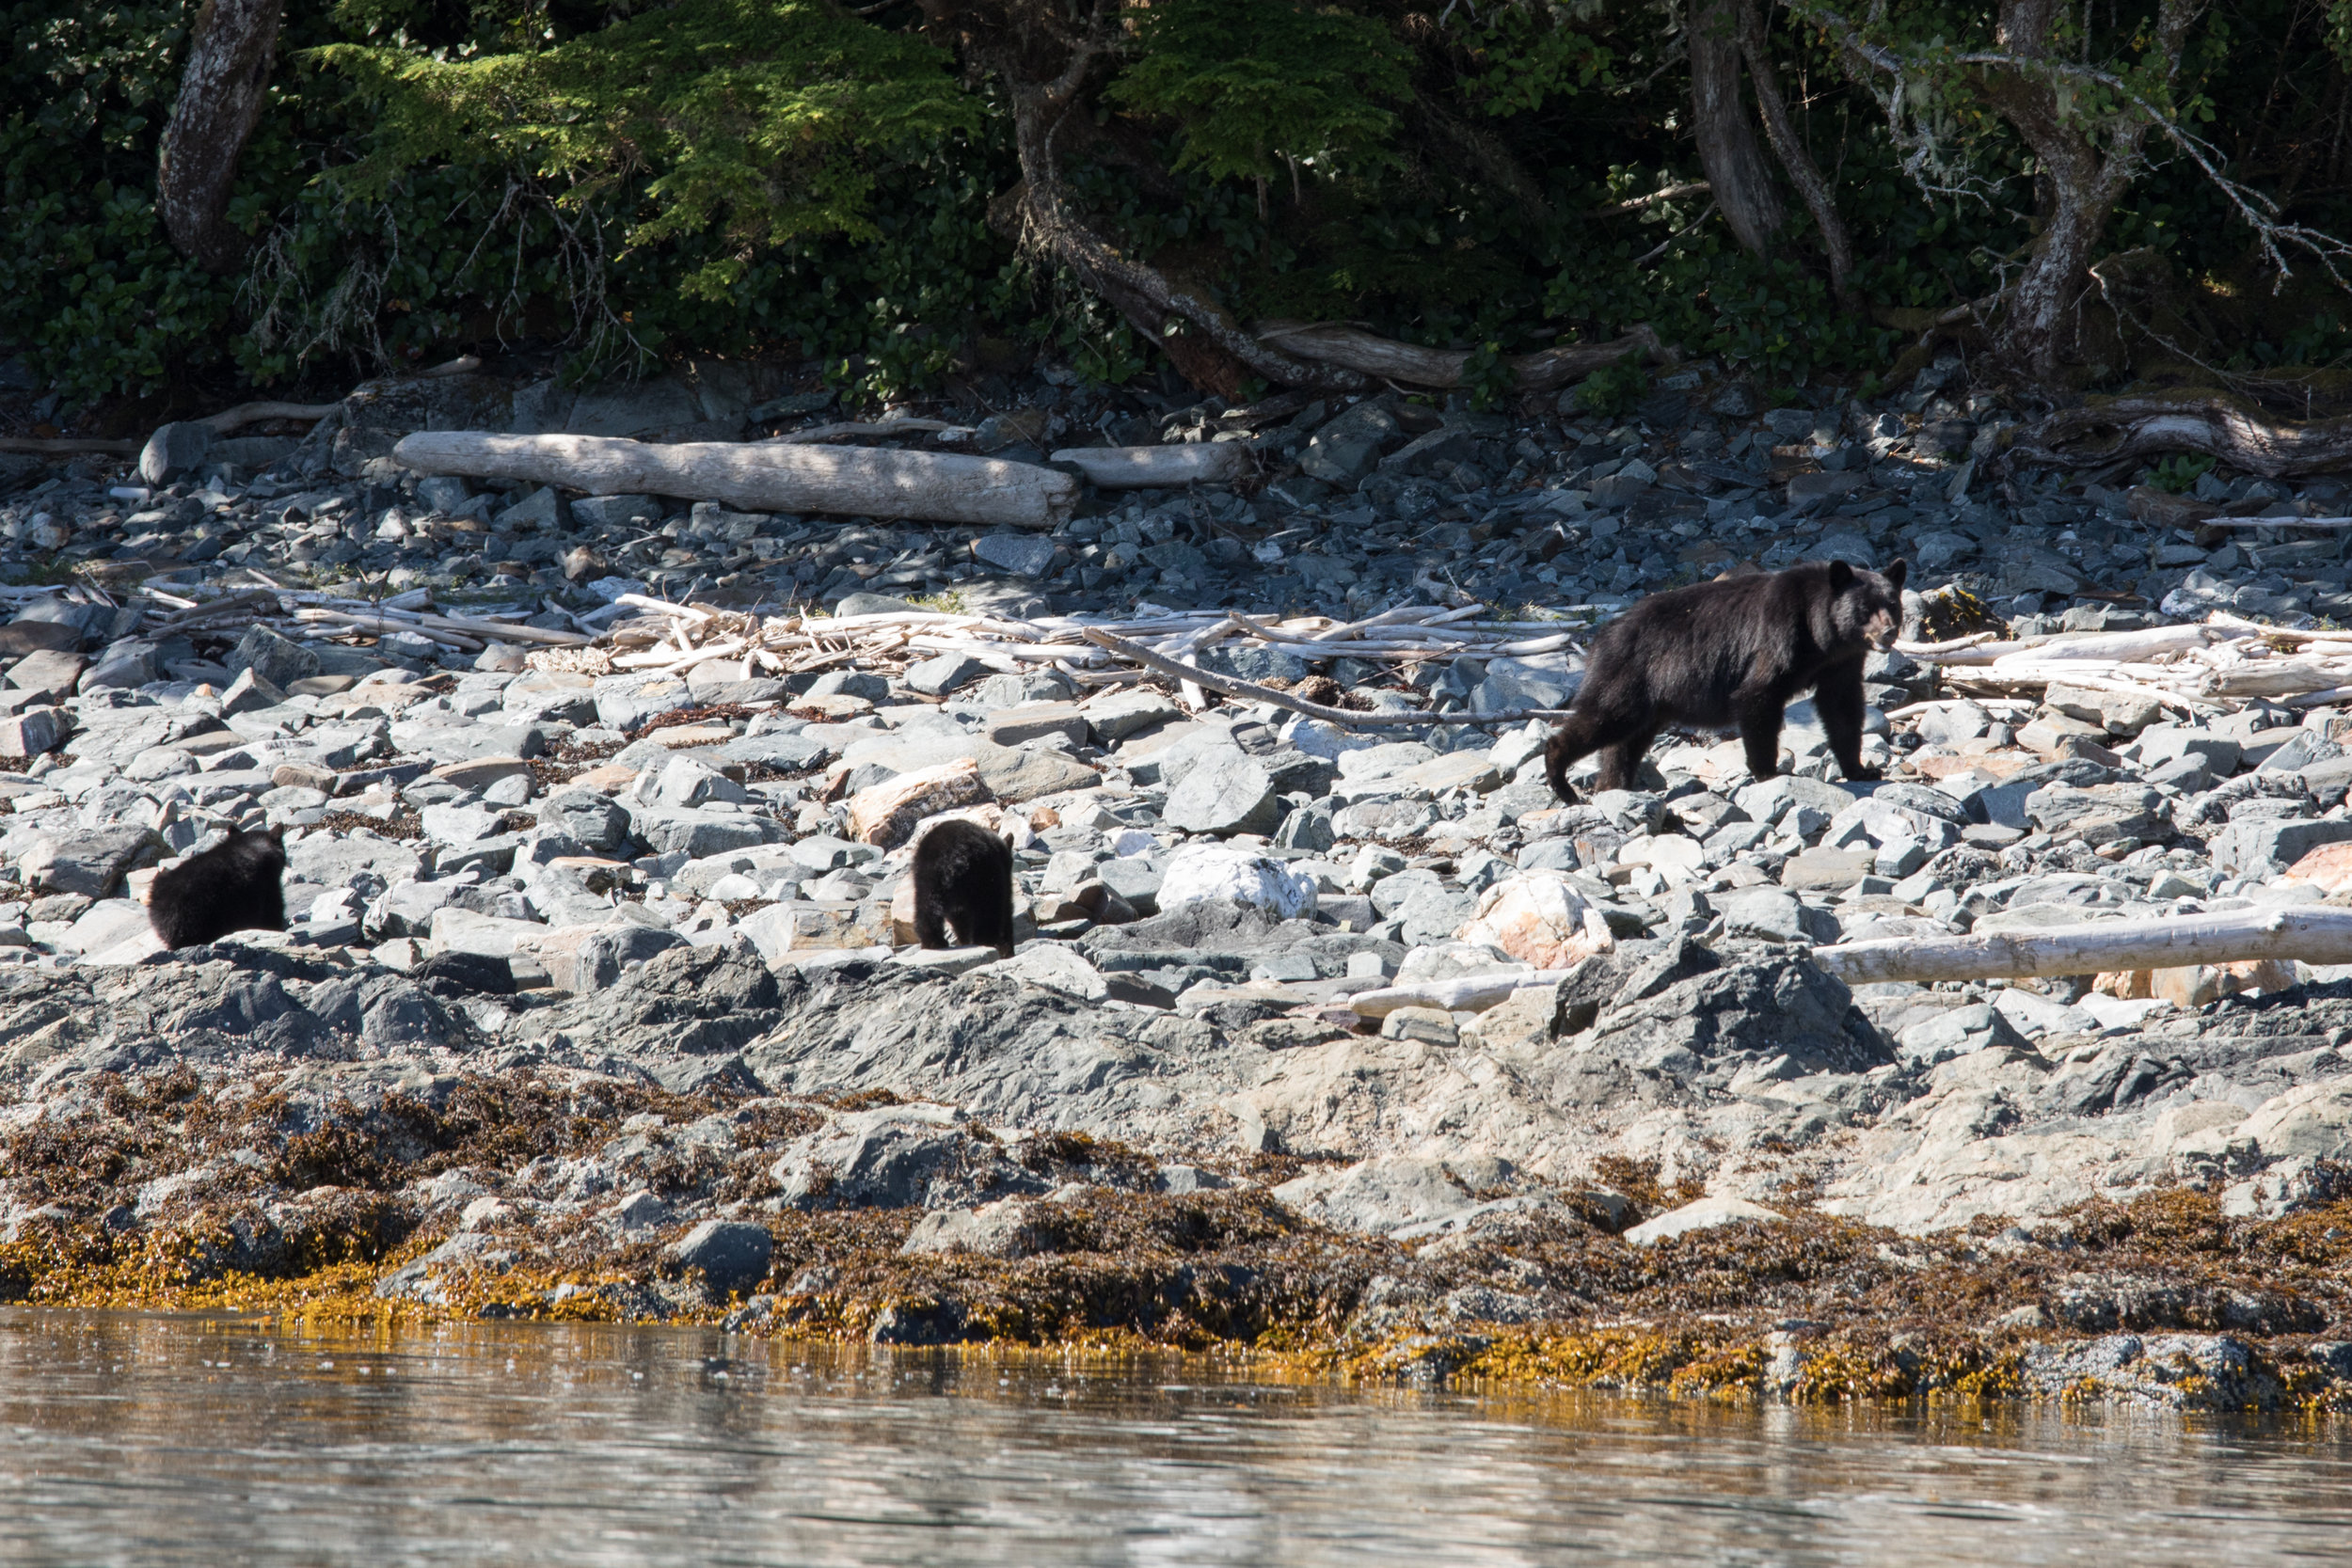 S POW was rich in wildlife. We say many black bear, and quite a few cubs. This mother and her cubs were on the beach rolling rocks to forage for food.